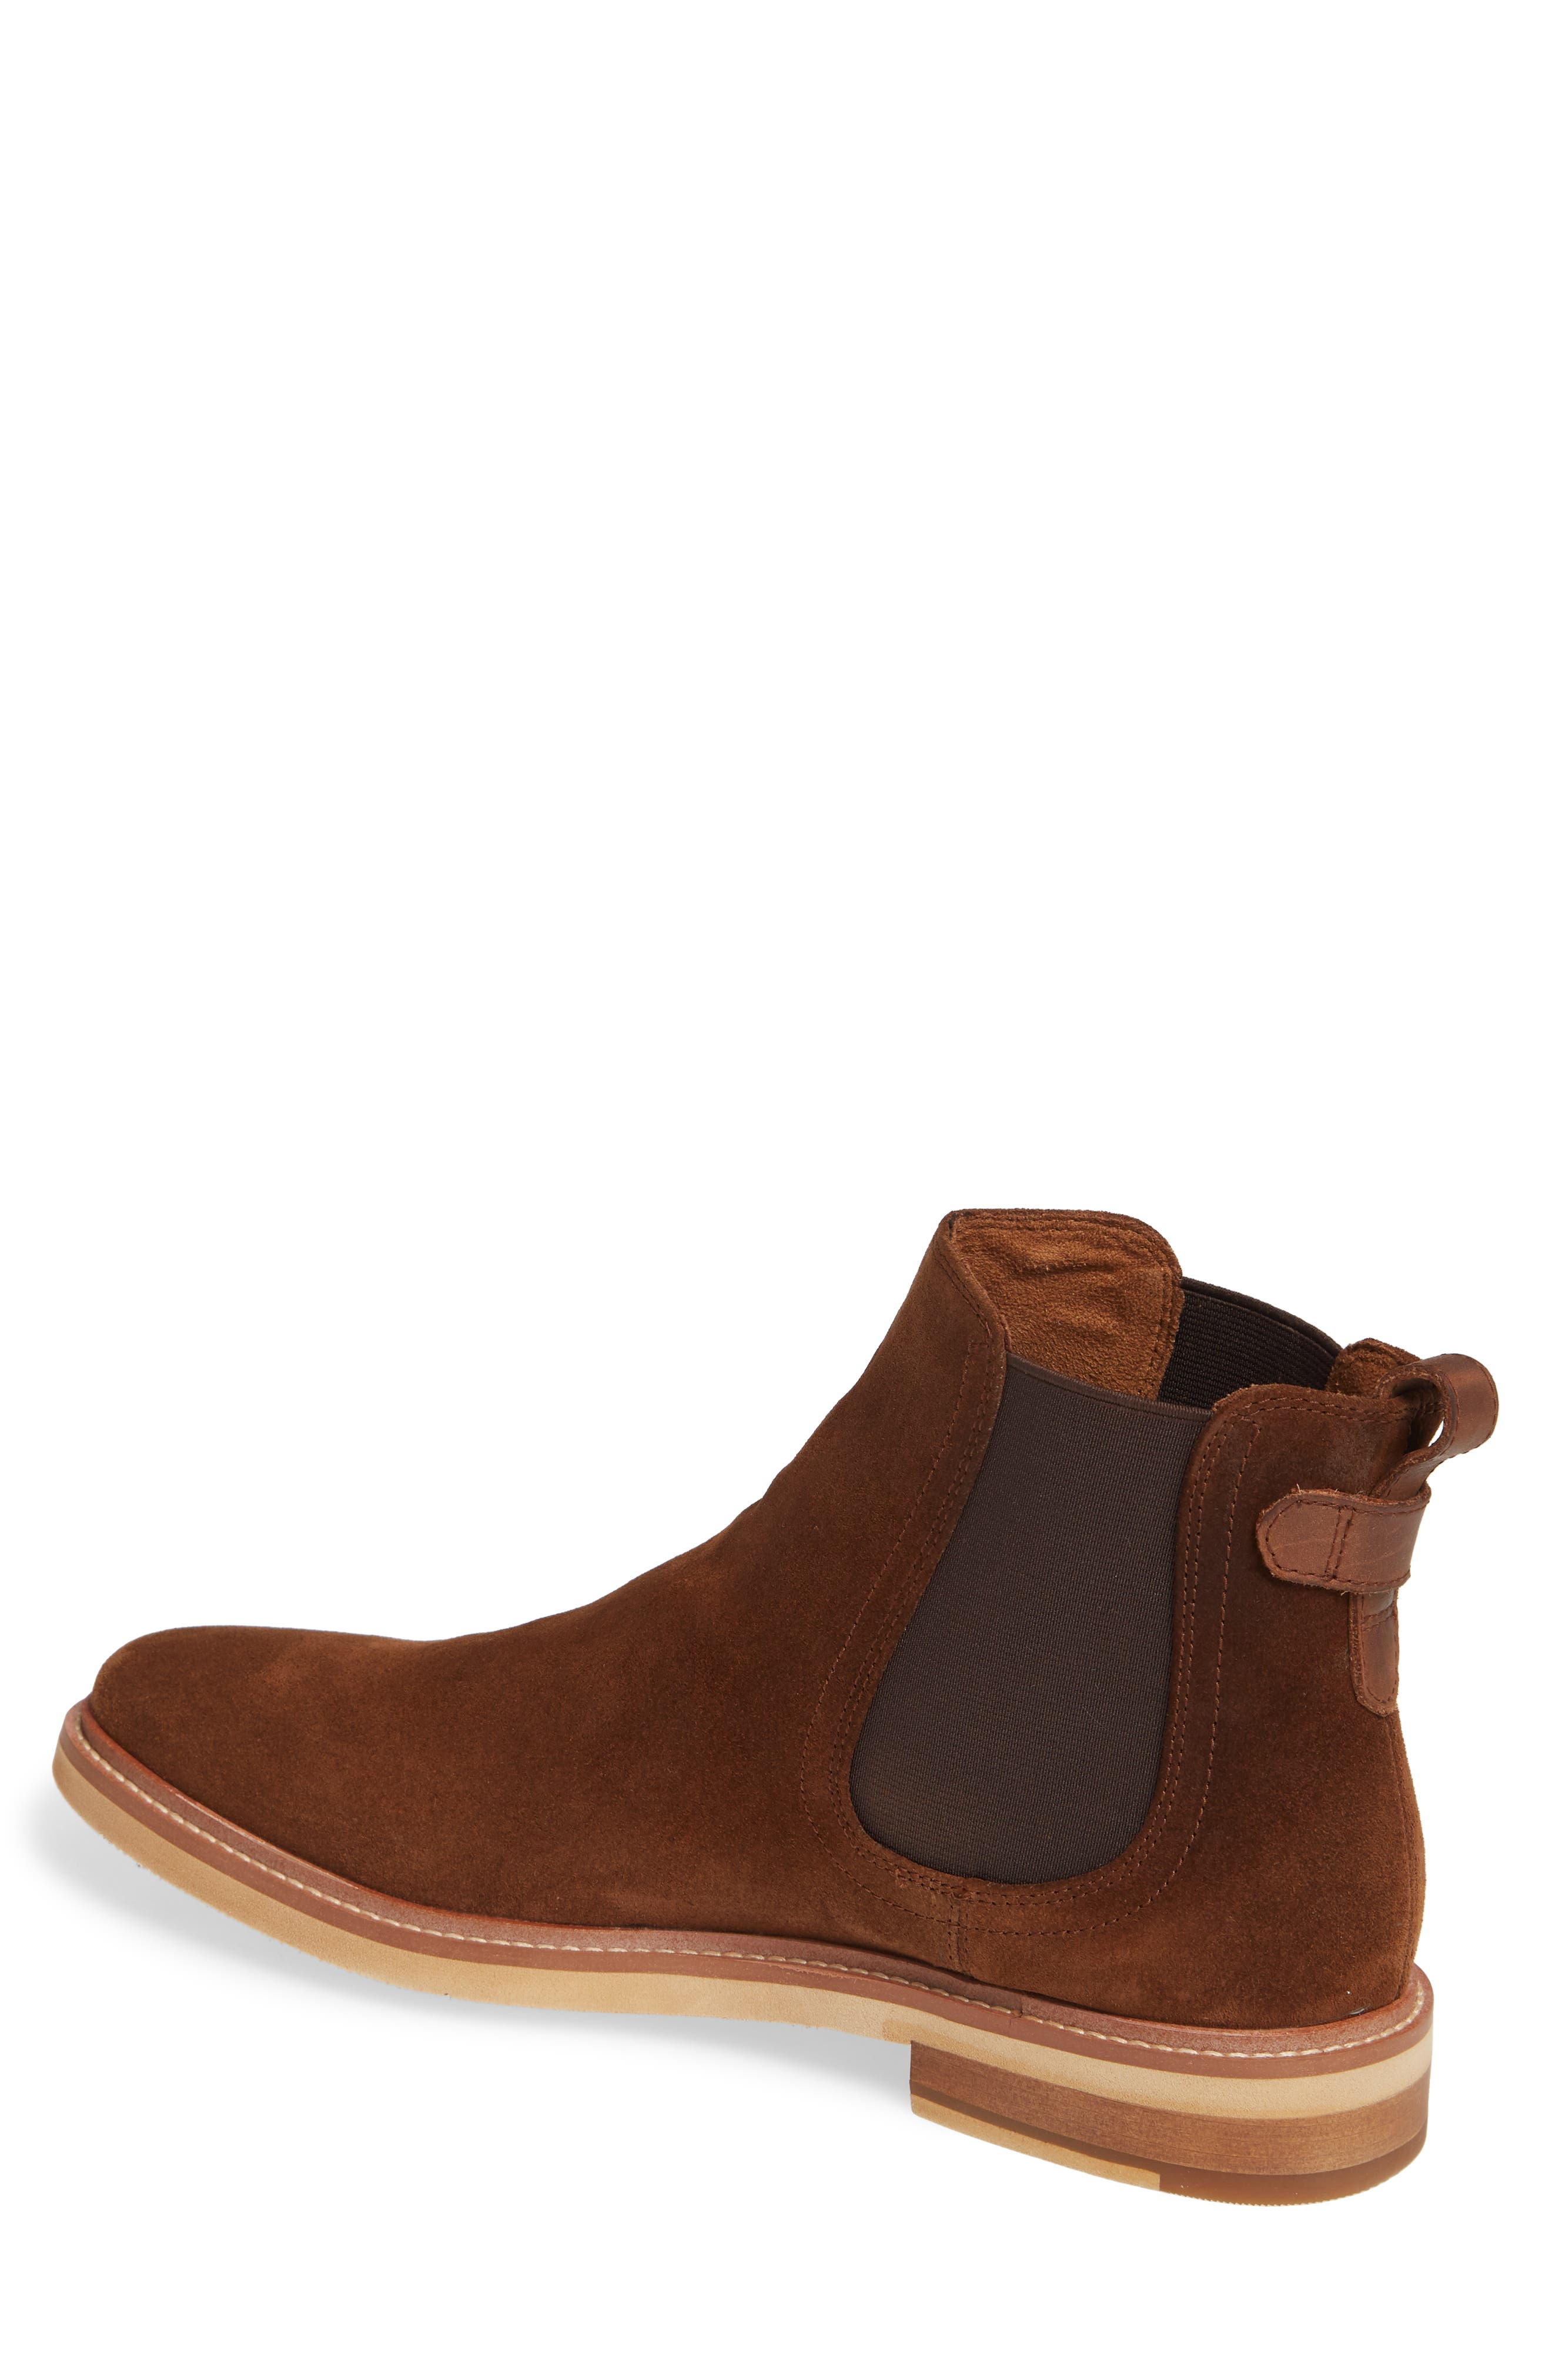 Whistler Mid Chelsea Boot,                             Alternate thumbnail 2, color,                             TOBACCO SUEDE